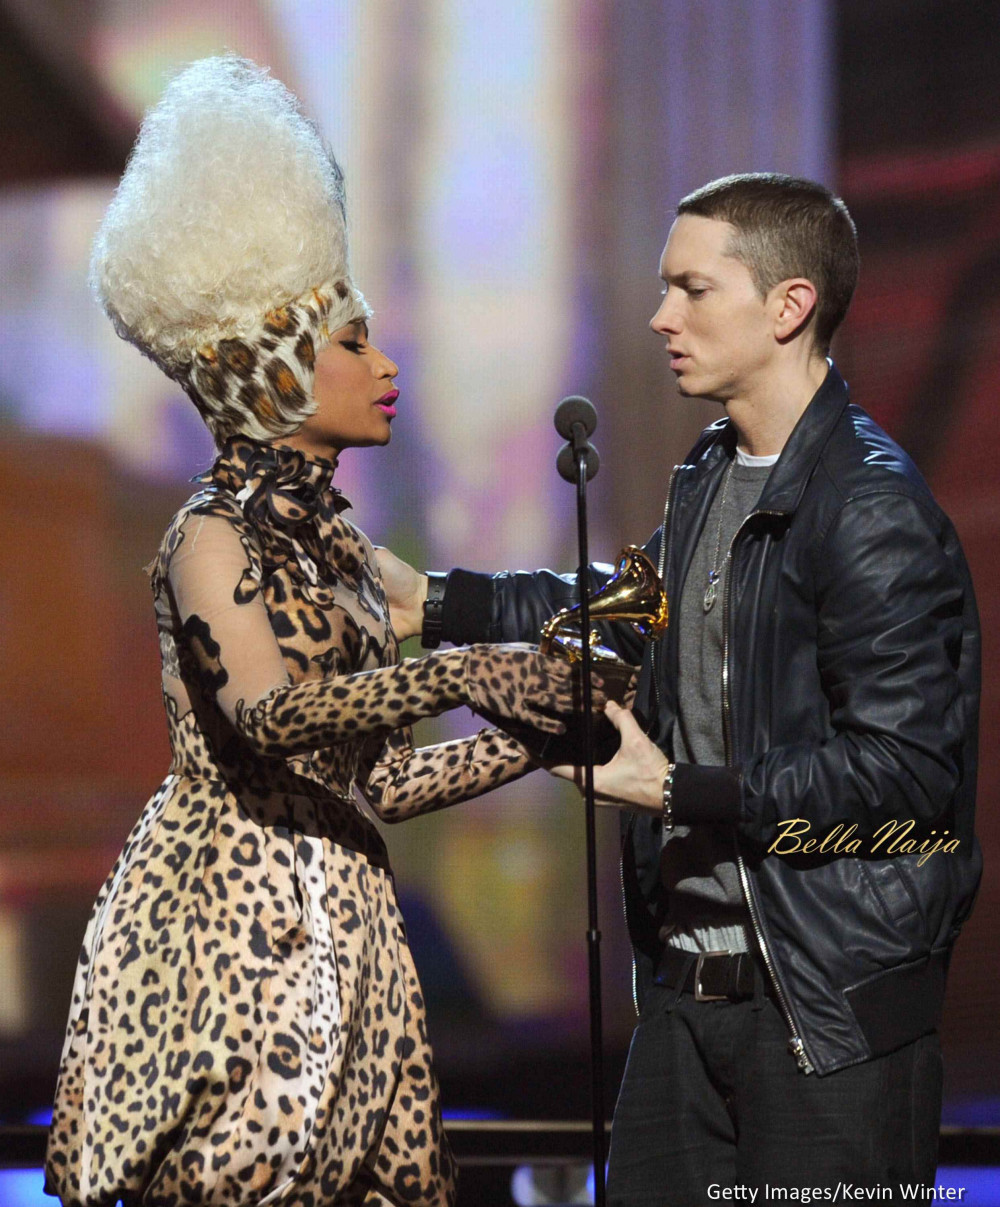 Eminem dating Nicki Minaj, she confirms in Instagram post